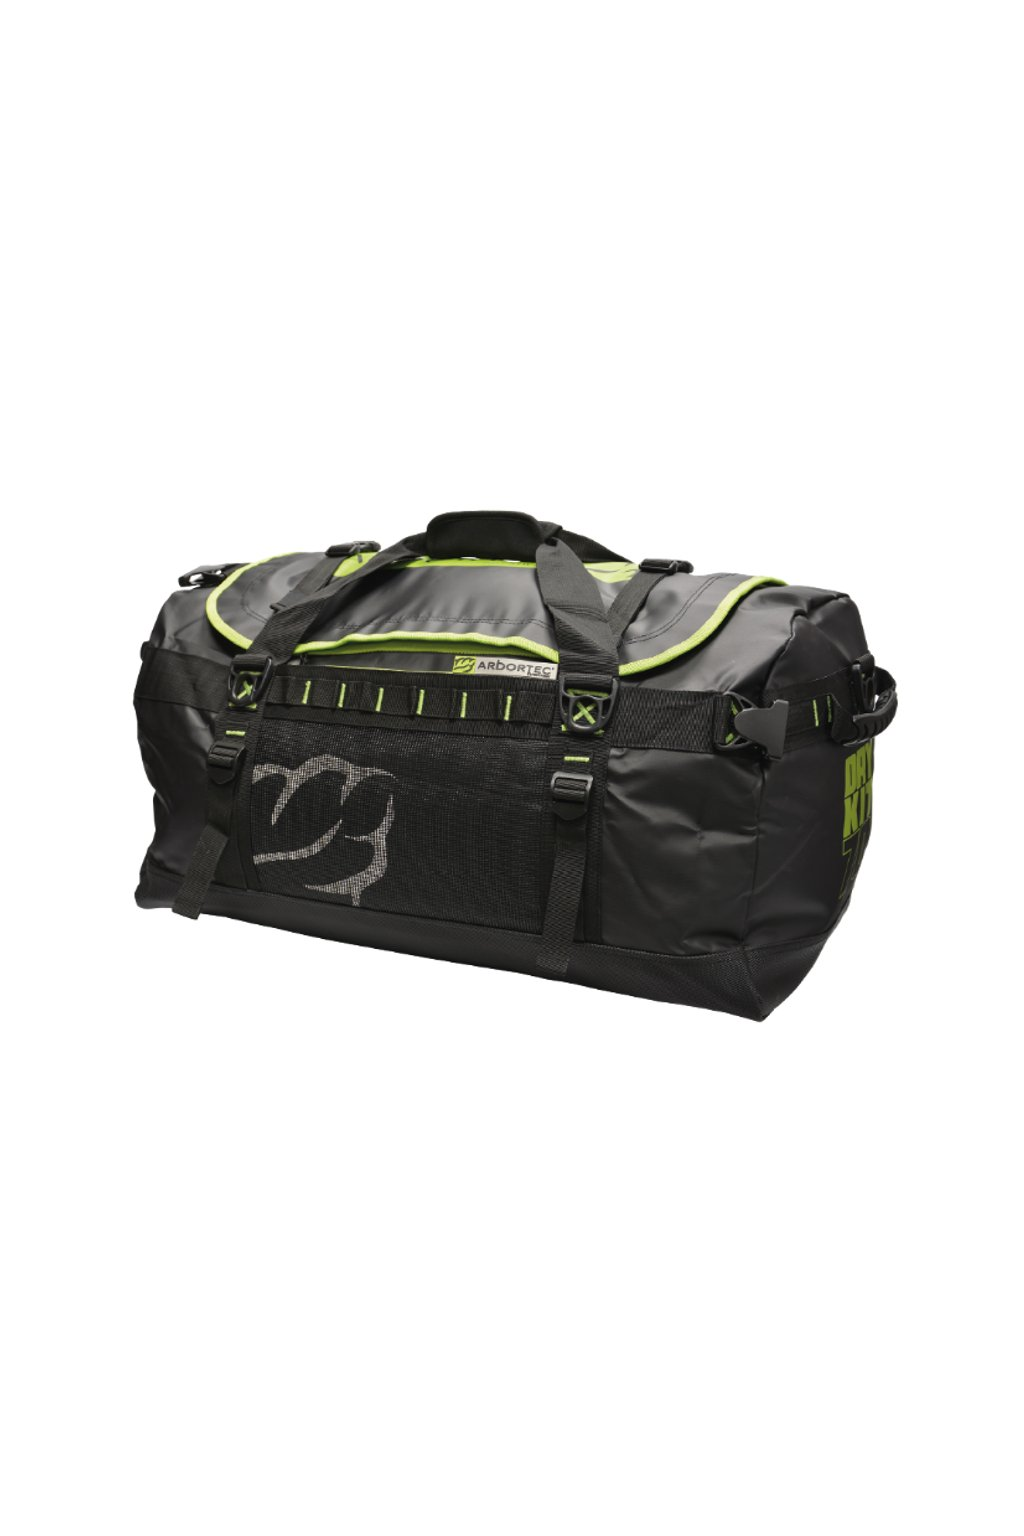 Arbortec kit bag b5d5ec94 5502 429e 8e4f 2191de9e7cd1 931x